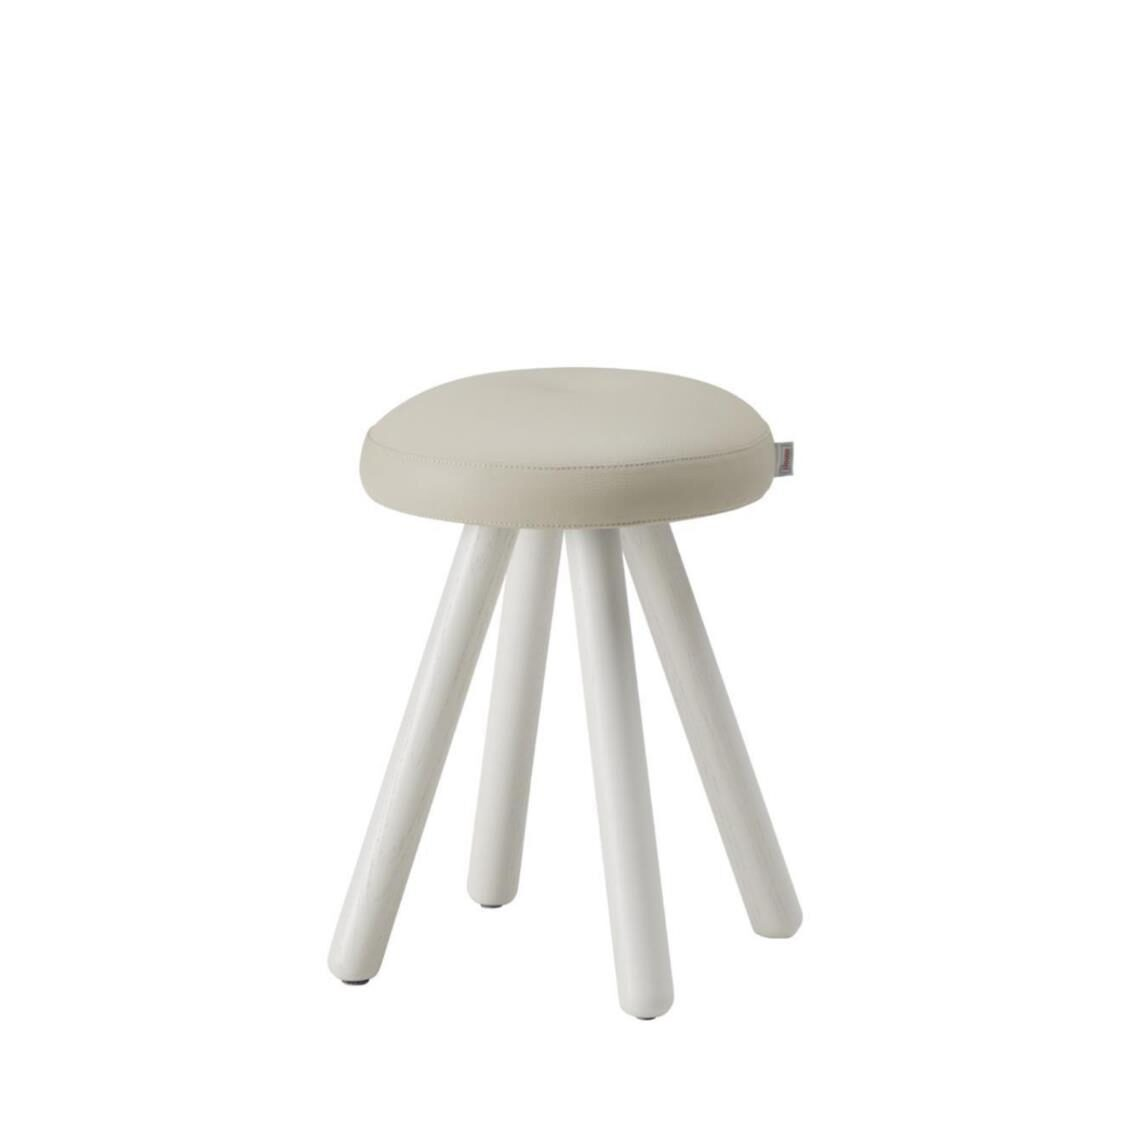 Miel Gallery Wooden Round Stool IVLBG